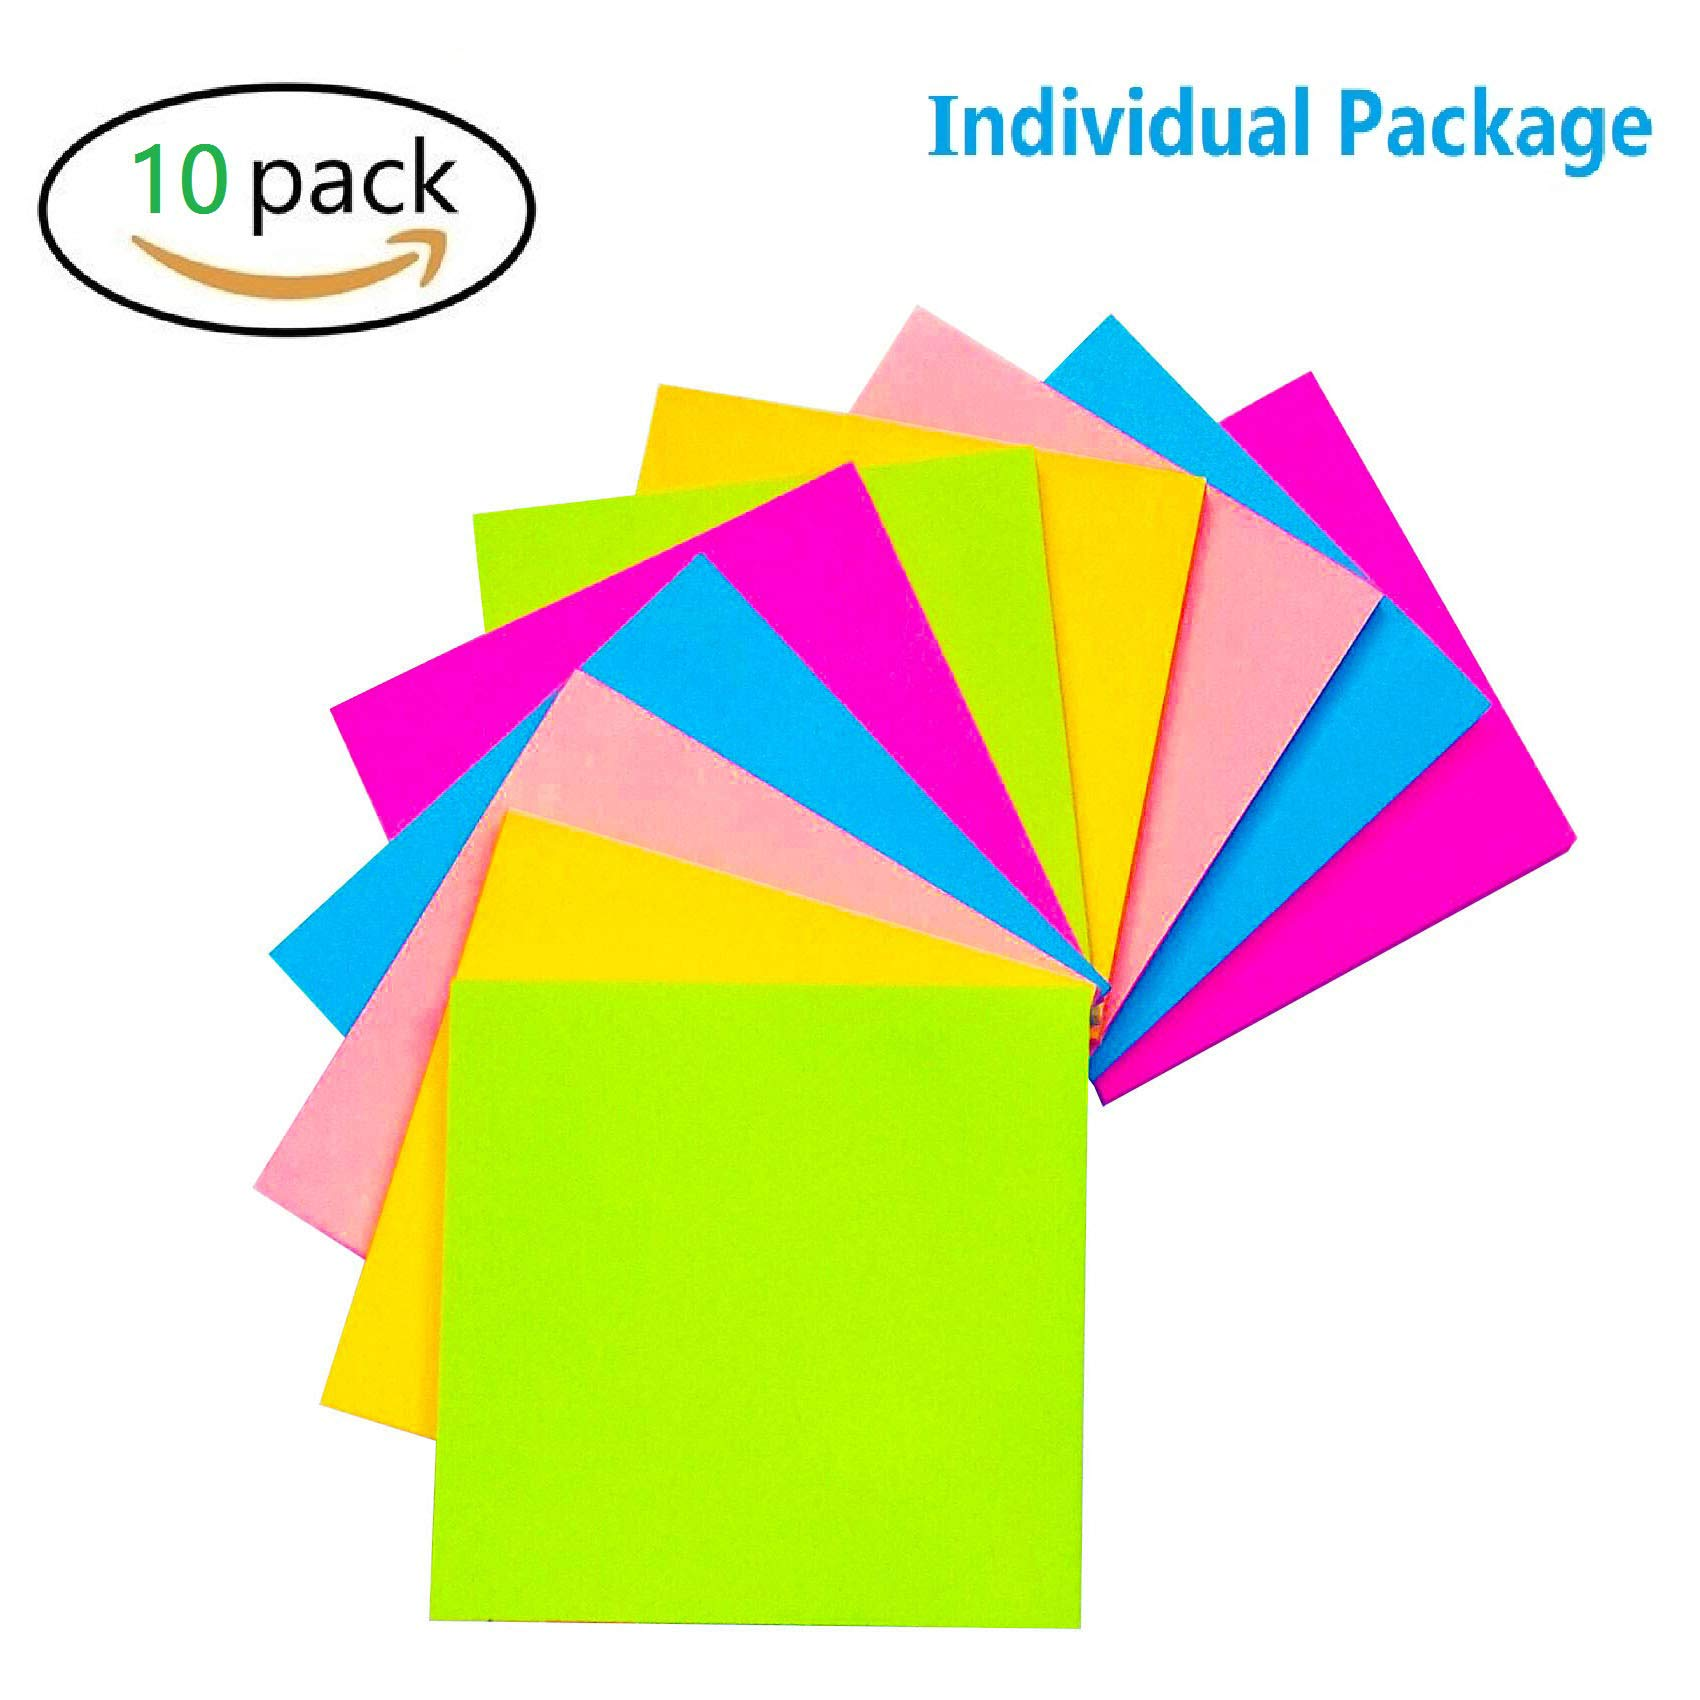 Sticky Notes 3x3 inches, 5 Bright Color Self-Stick Notes 10 Pads/Pack, 100 Sheets/Pad, Squares Easy Post Individually Package